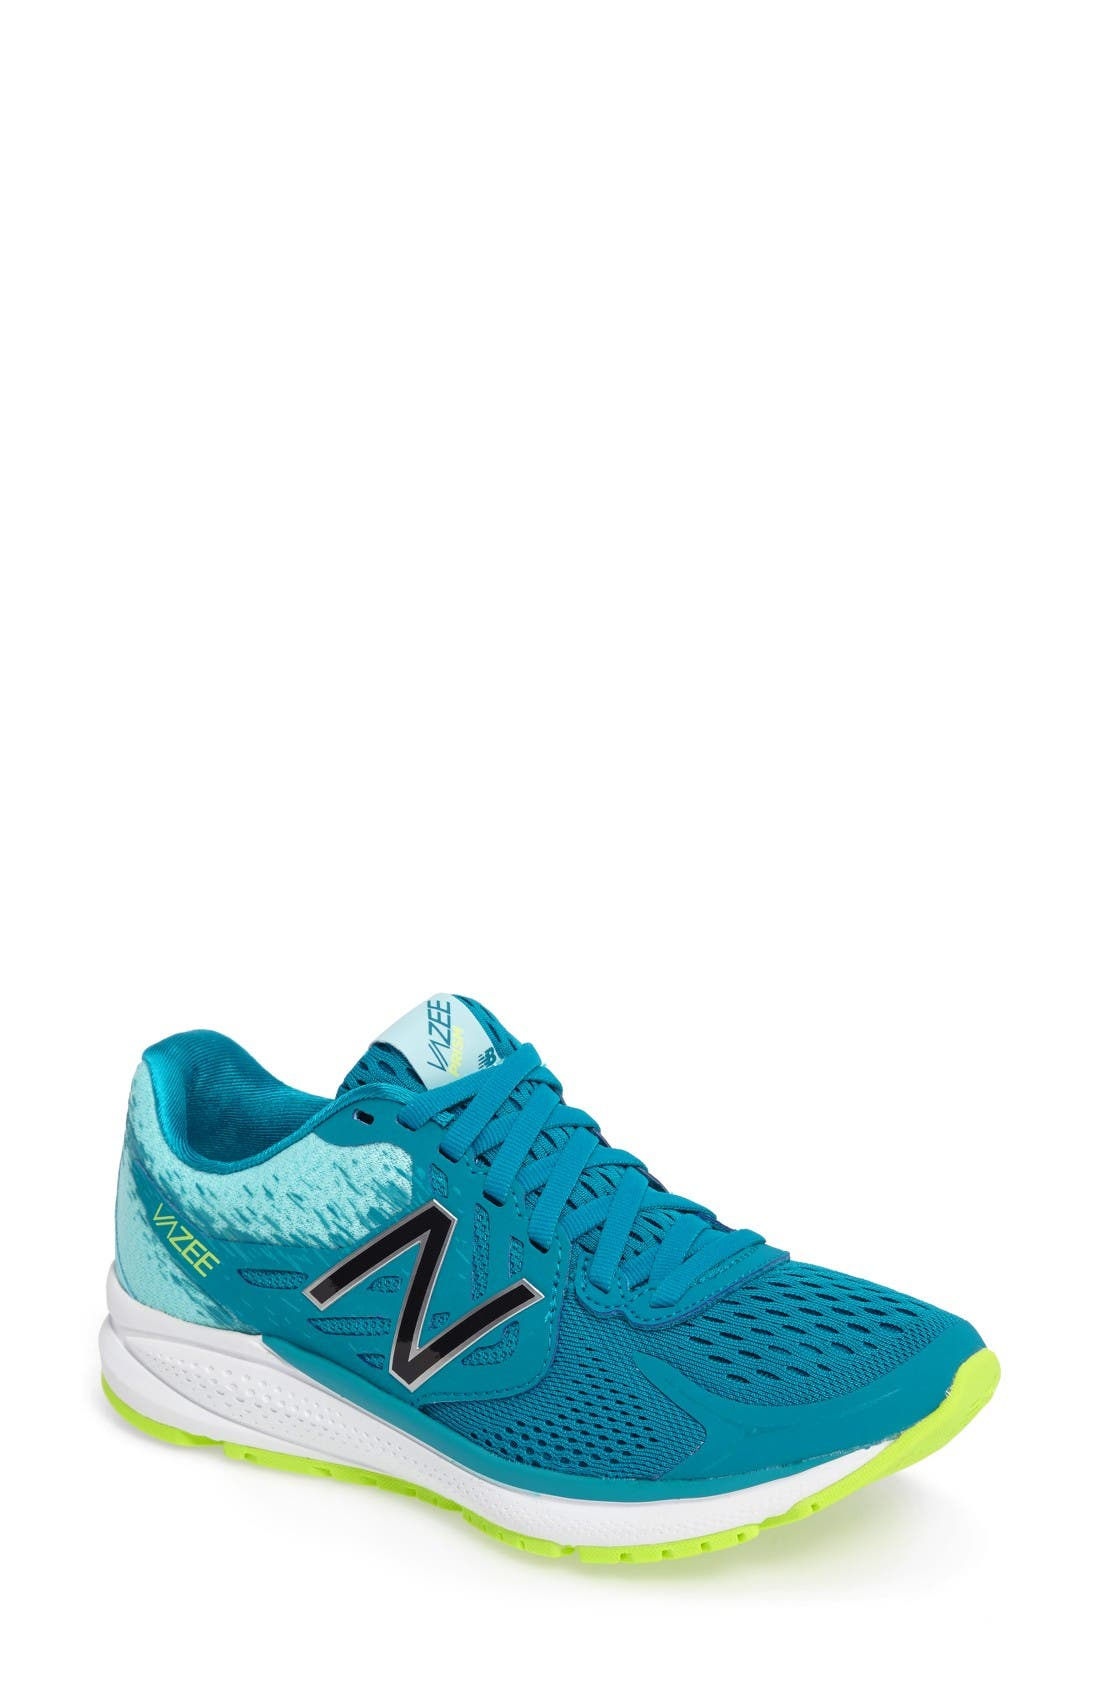 NEW BALANCE Vazee Prism Running Shoe